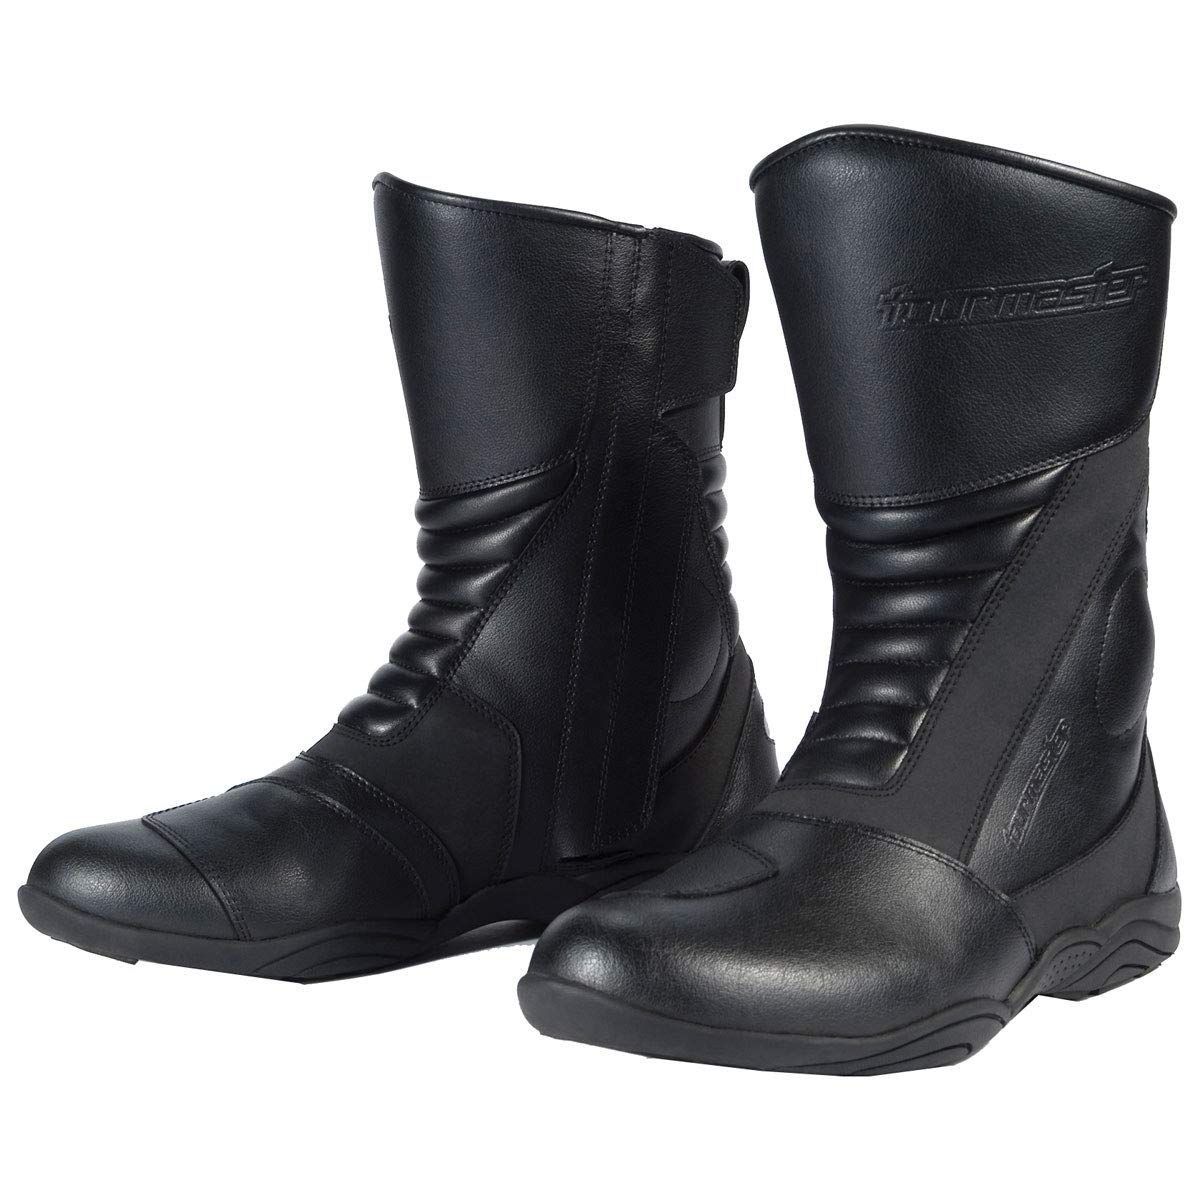 Tour Master Solution WP 2.0 Road Boots - 9 Wide/Black 8601-1205-43-HH-FBA